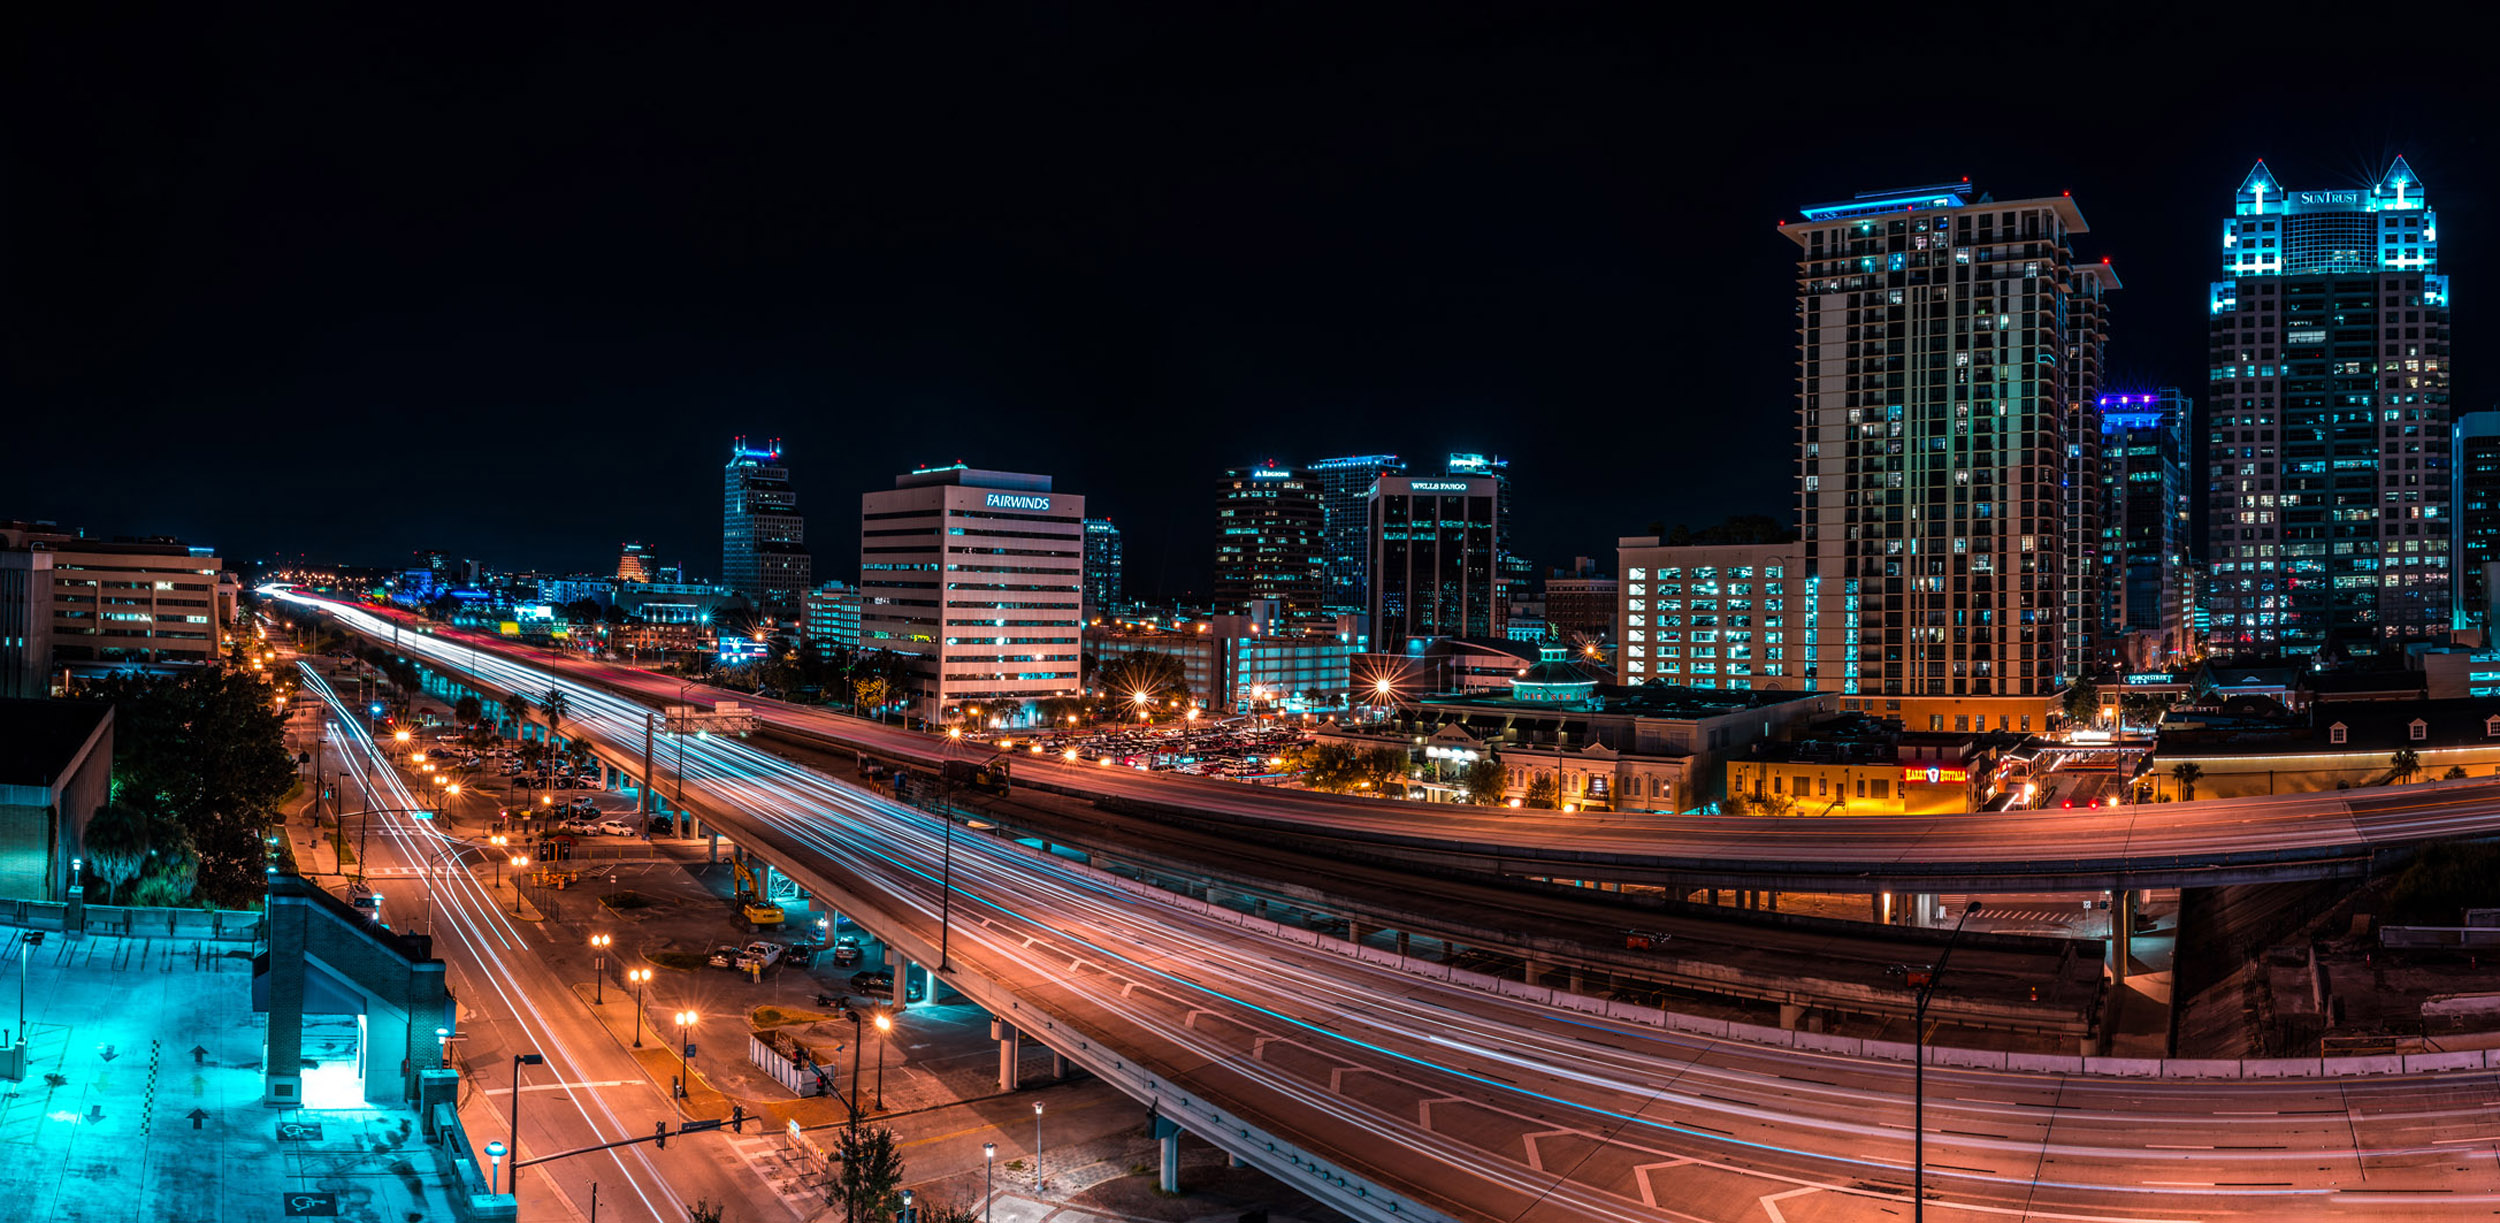 Orlando - A long exposure of Interstate 4 through the heart of downtown Orlando. This was taken from the lounge on top of the arena.